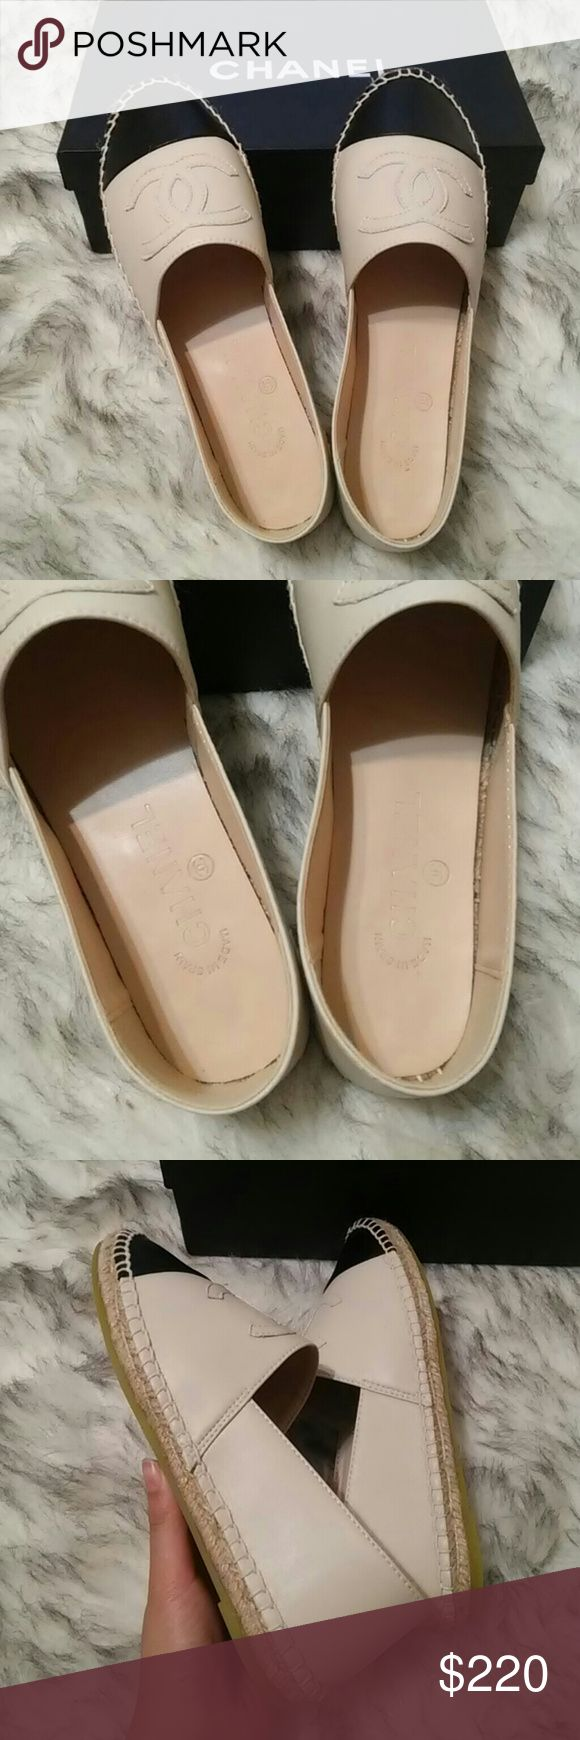 Chanel beige espadrilles leather shoes New in box! Not orig. Real leather. High quality as original. Size 39 but ran very small. It will fits size 6.5-7. CHANEL Shoes Espadrilles